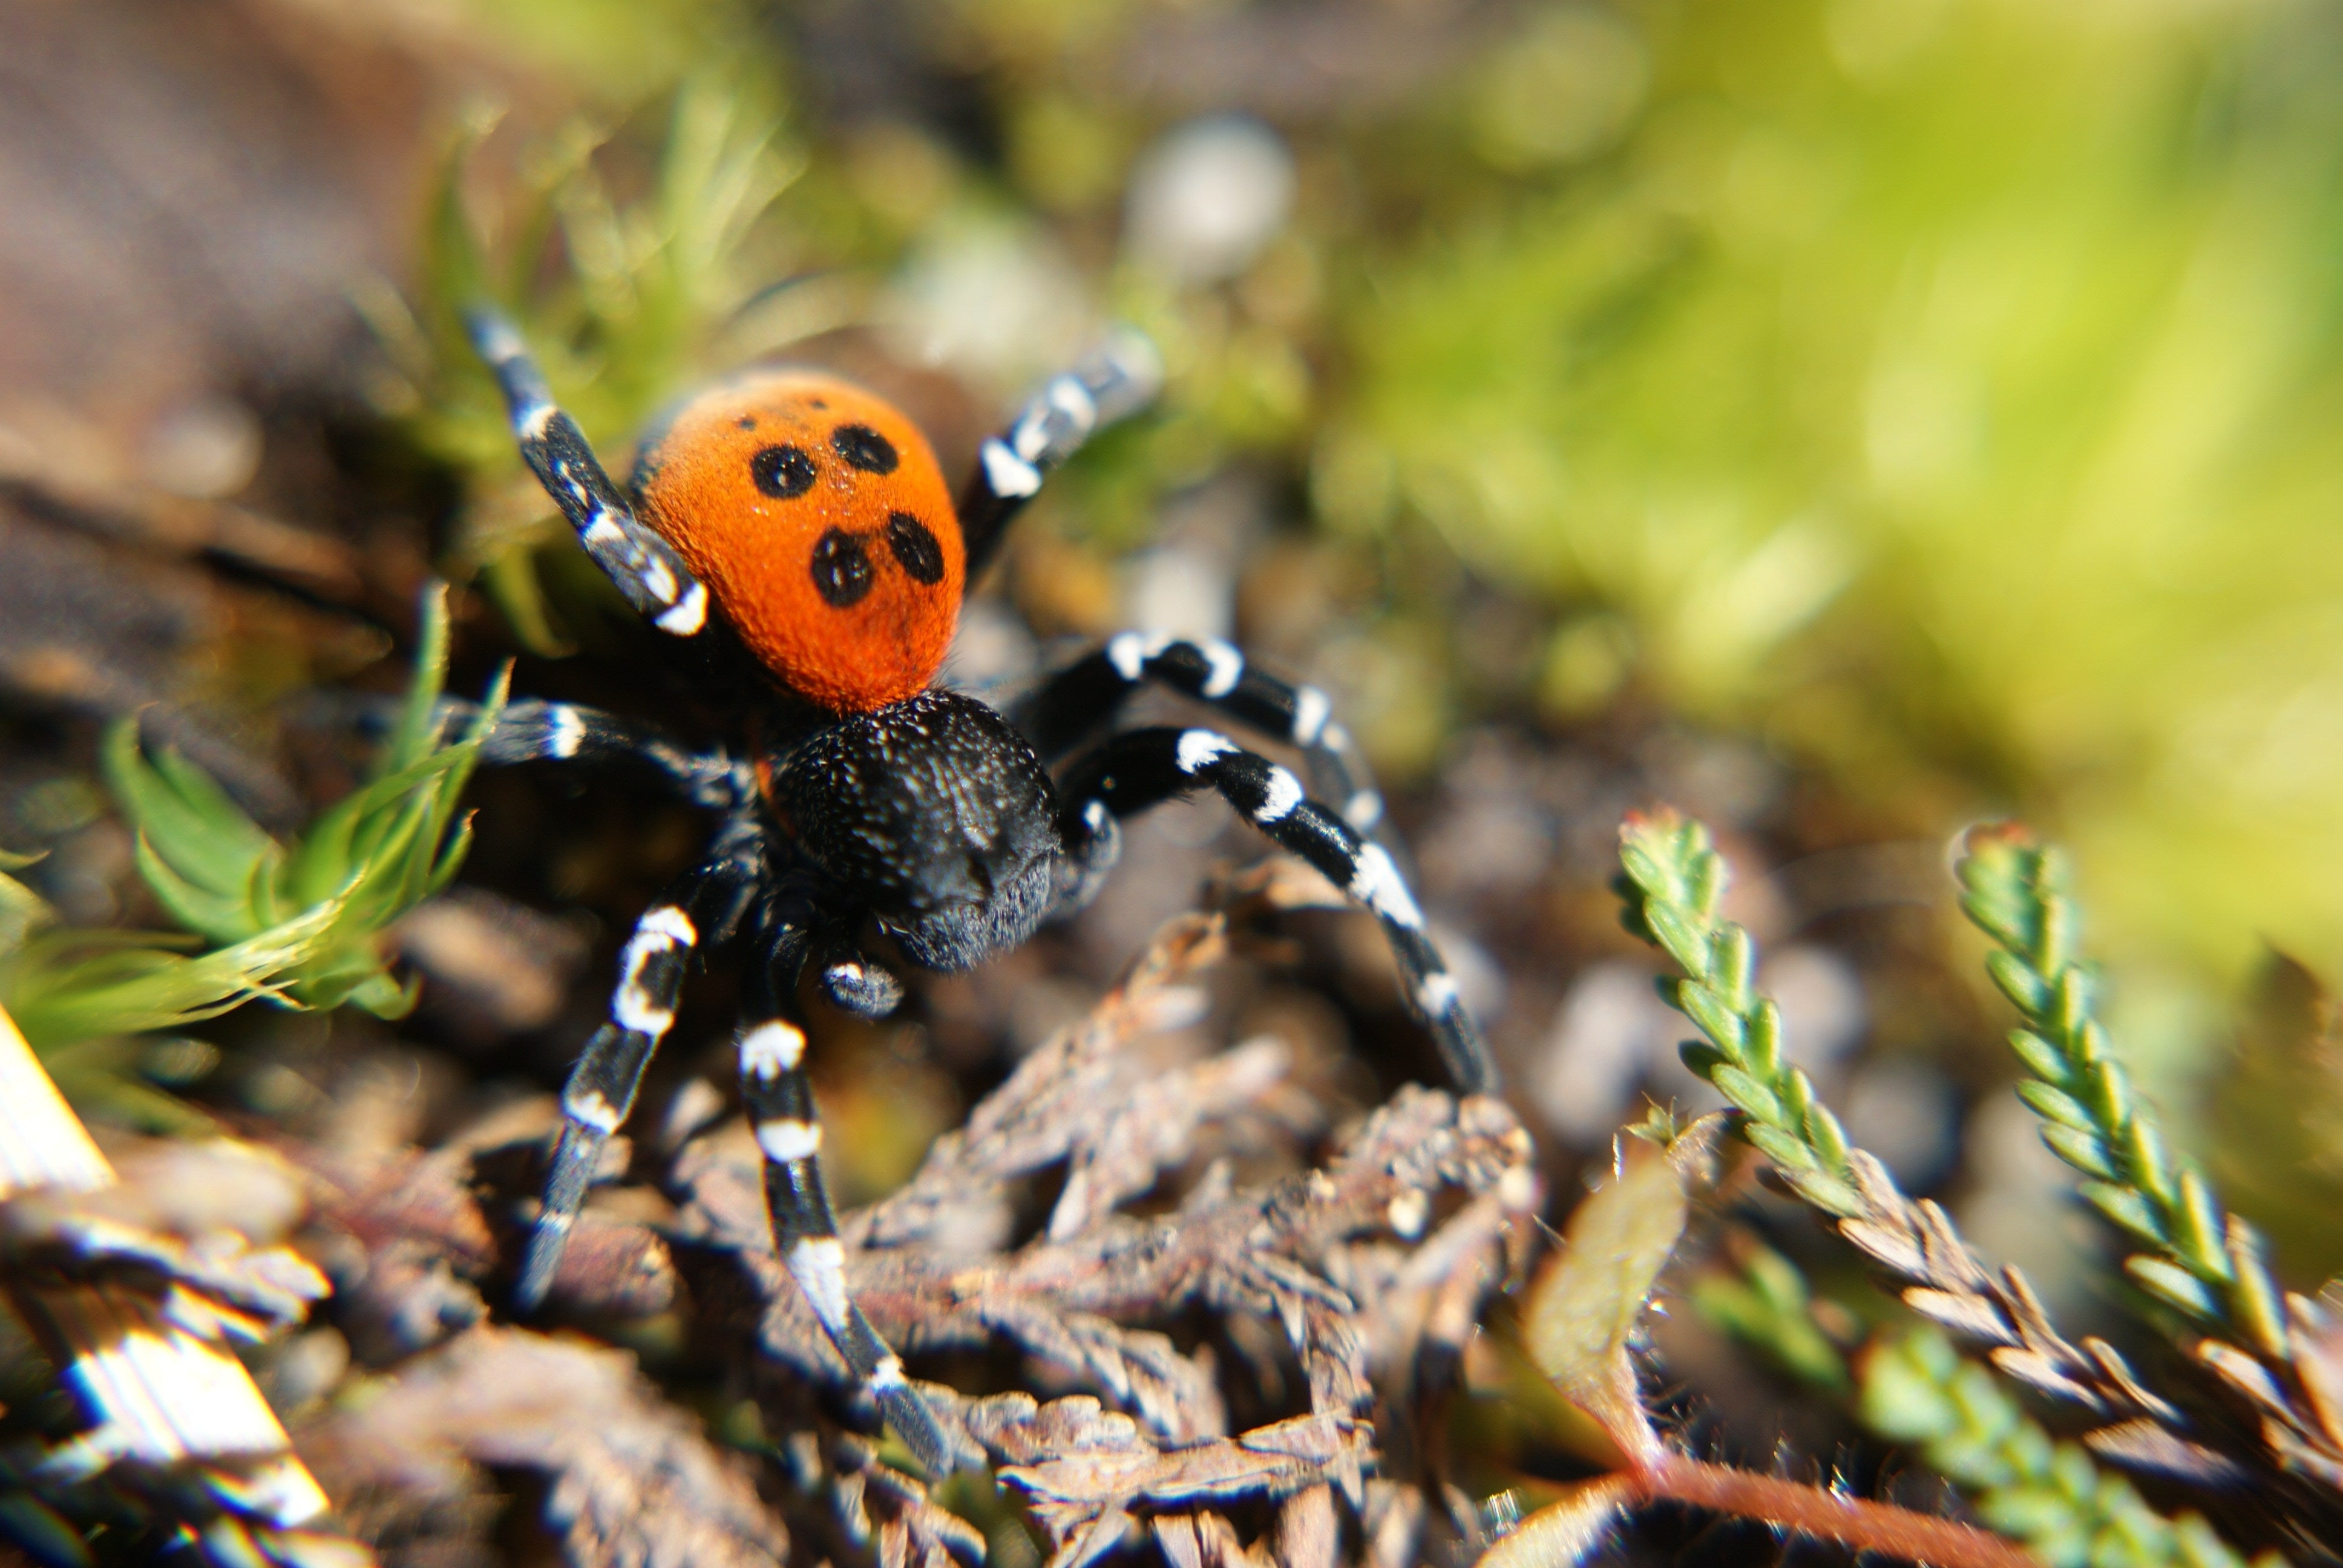 Endangered Feature Creature The Ladybird Spider Eco Kids Planet